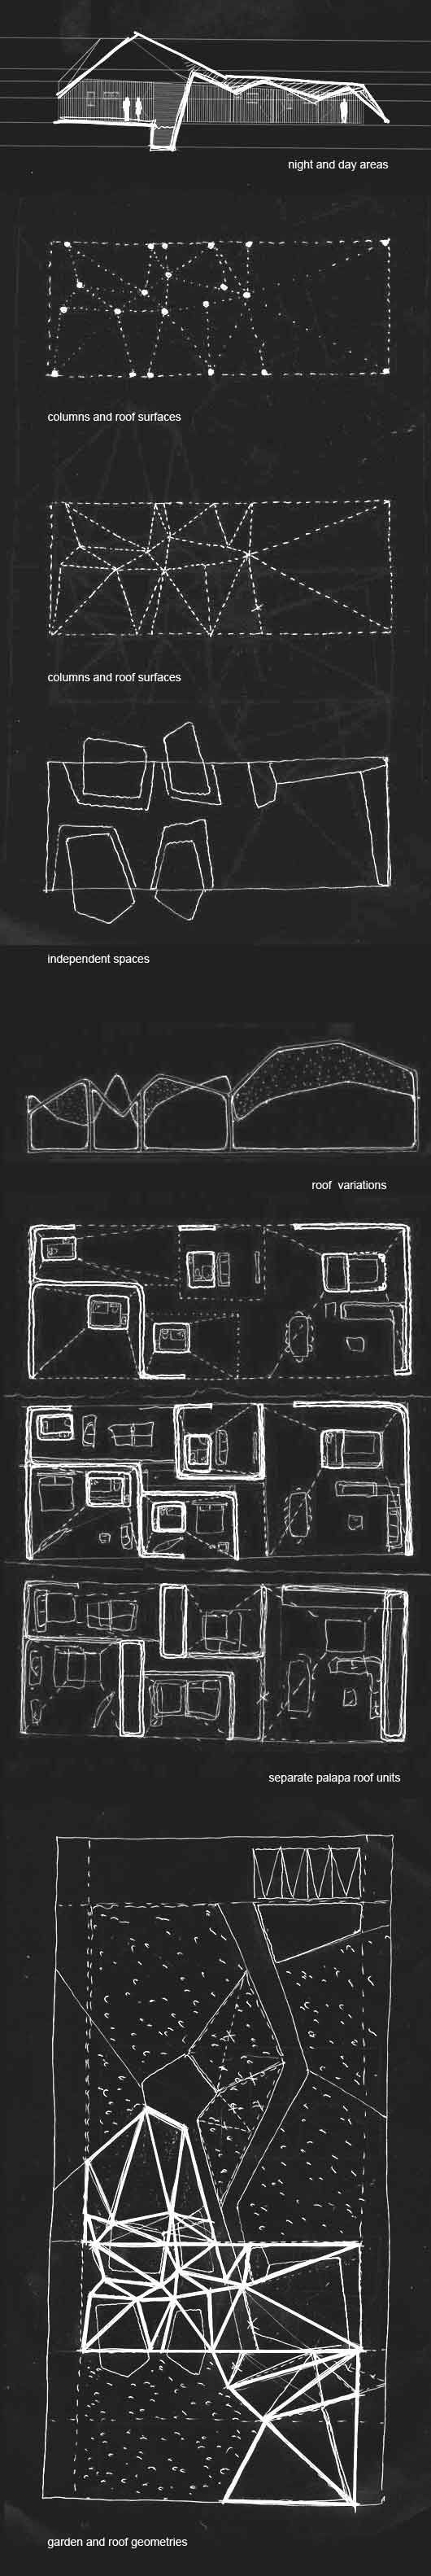 Casa Musso Conceptual drawings - first proposals | Productura: